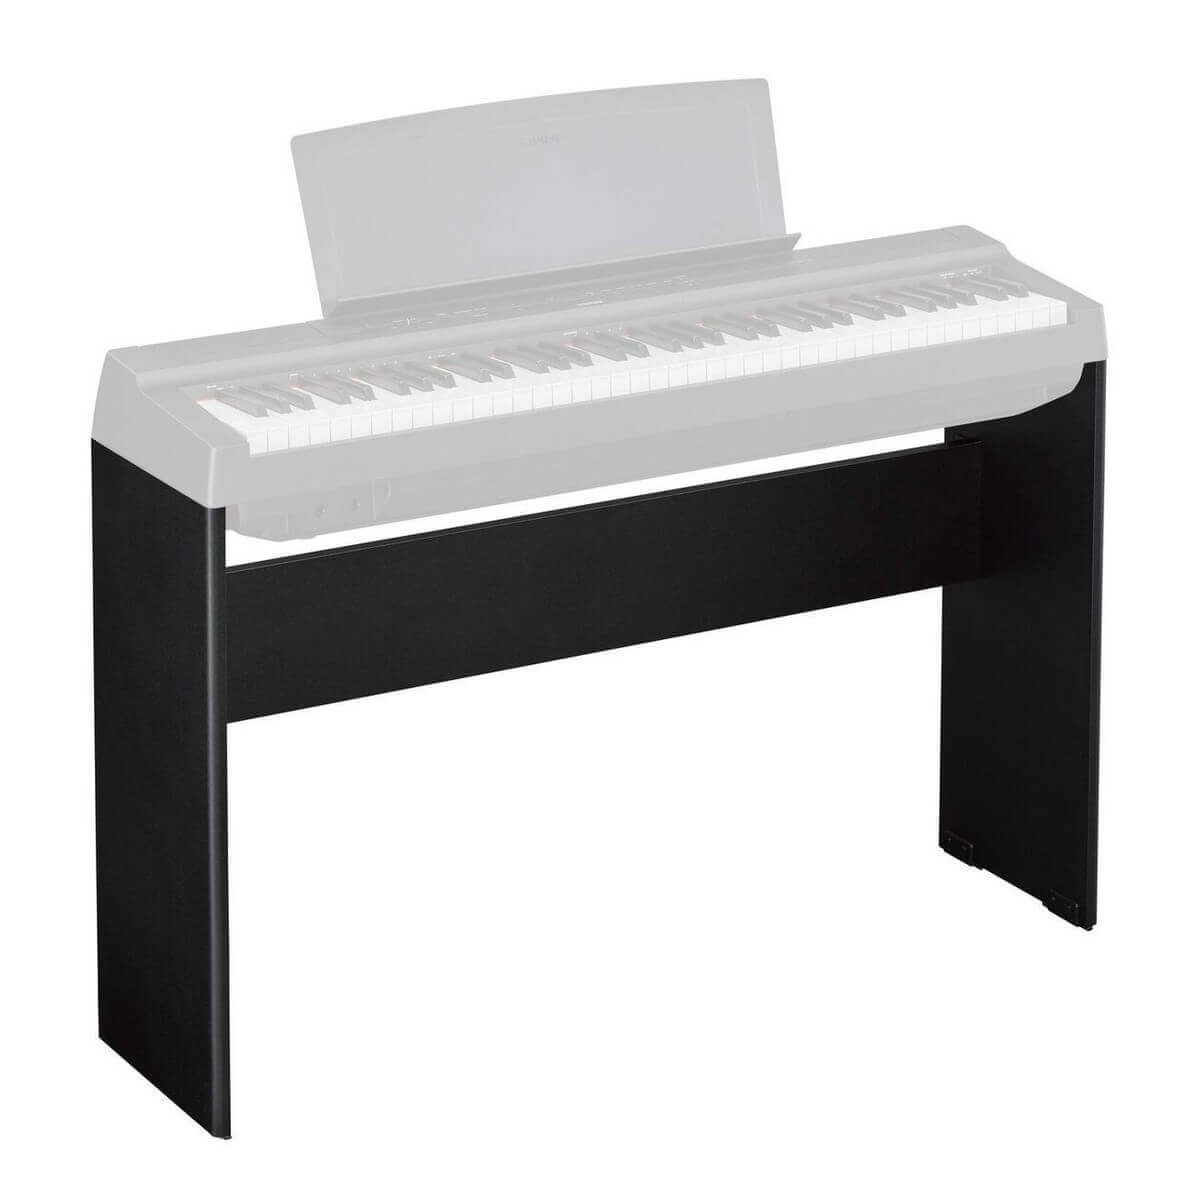 Yamaha L121 Stand for P121 Digital Piano, Black - Free Delivery